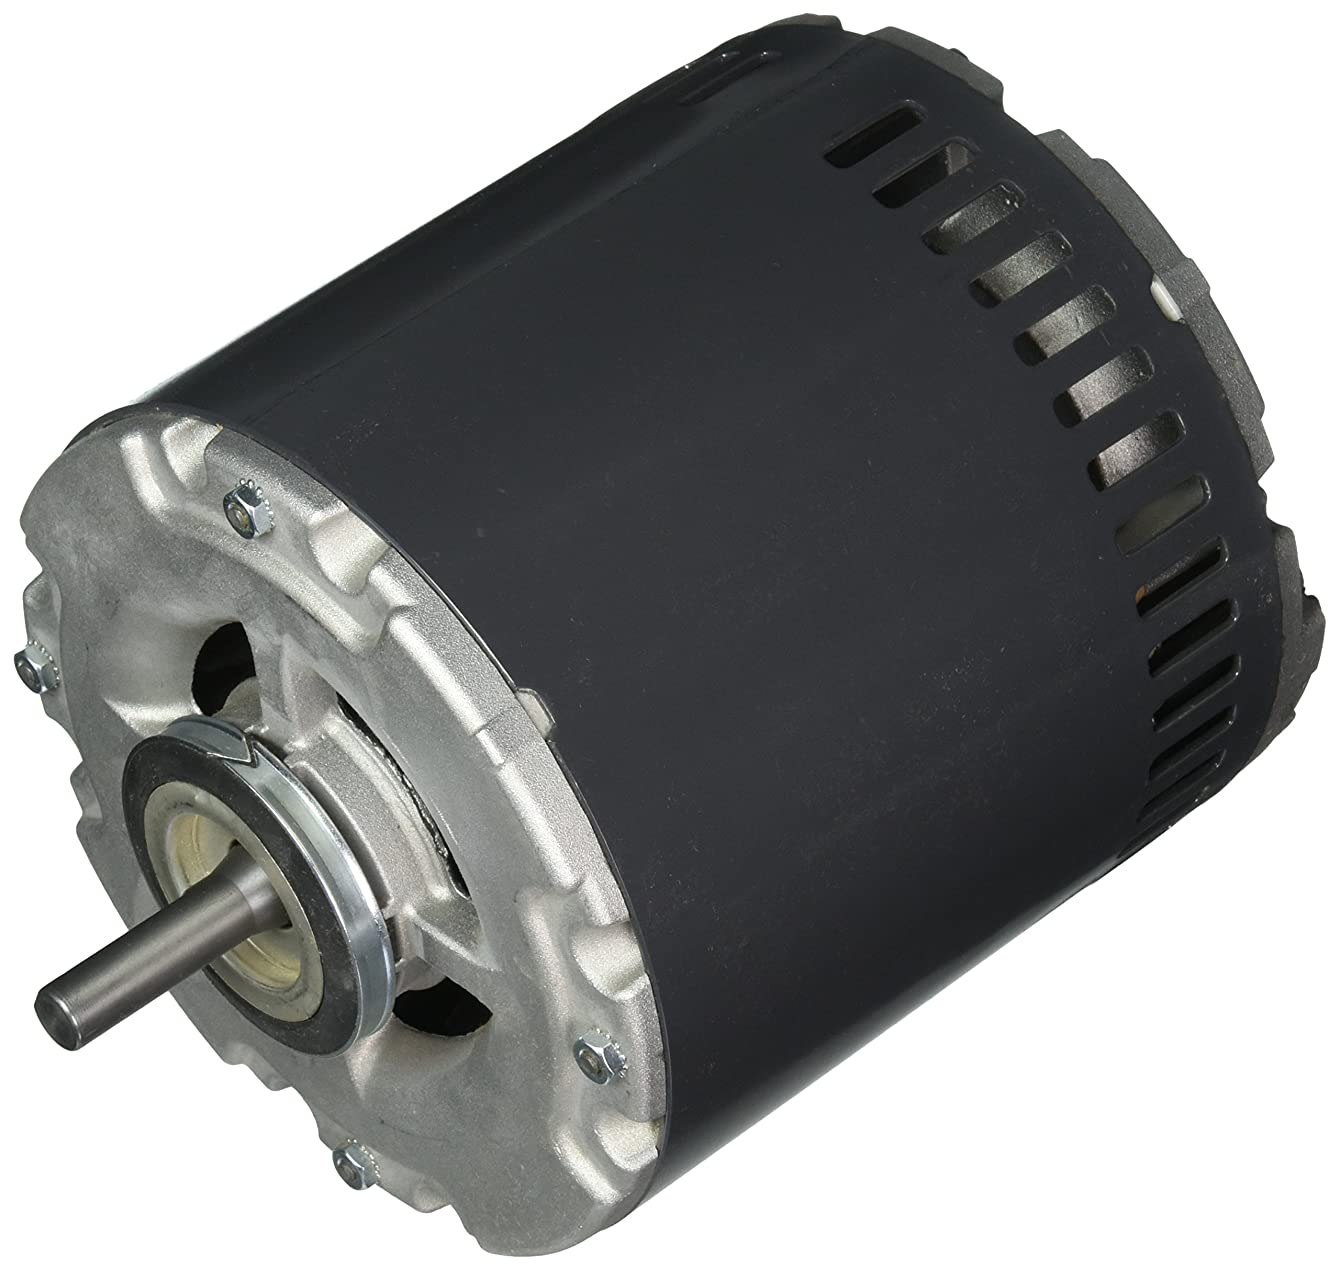 Phoenix Manufacturing 05-007-0042 1/2 HP Evaporative Cooler Motor, 2-Speed, 120-Volt